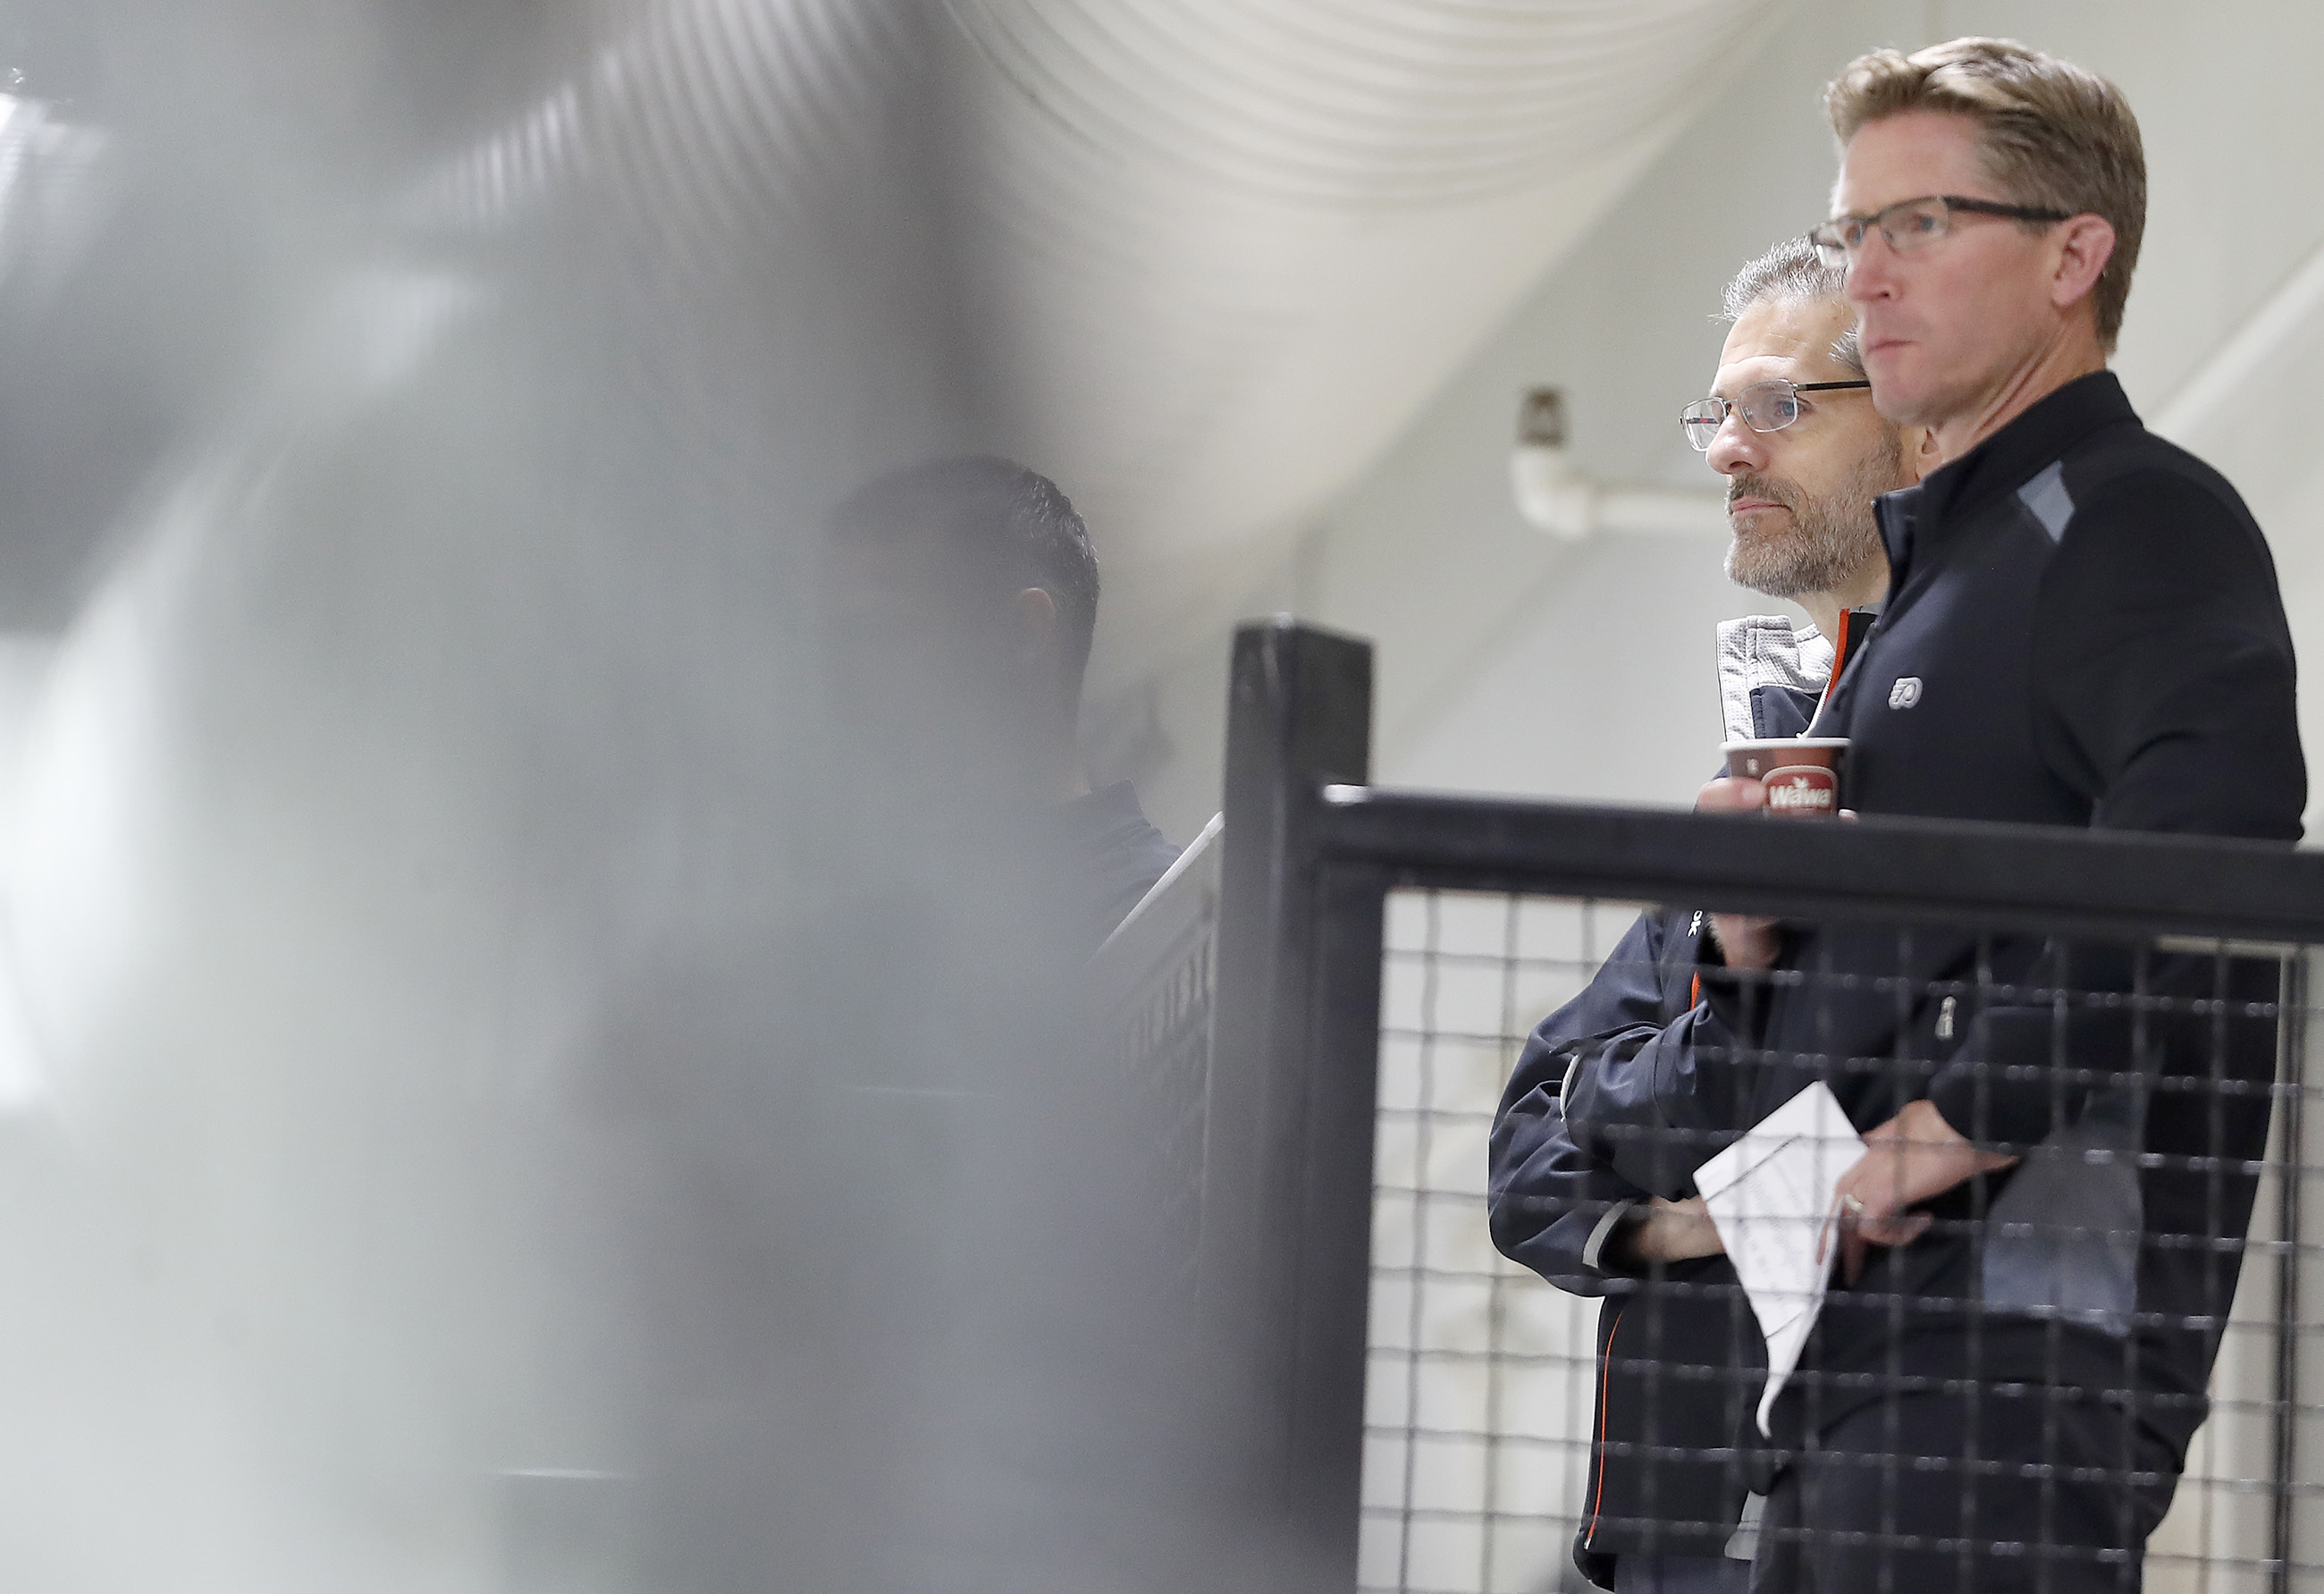 Flyers' executive vice president and general manager Ron Hextall, left, and head coach Dave Hakstol, right, watch during a development camp at the Flyers Skate Zone in Voorhees, NJ on July 8, 2017.